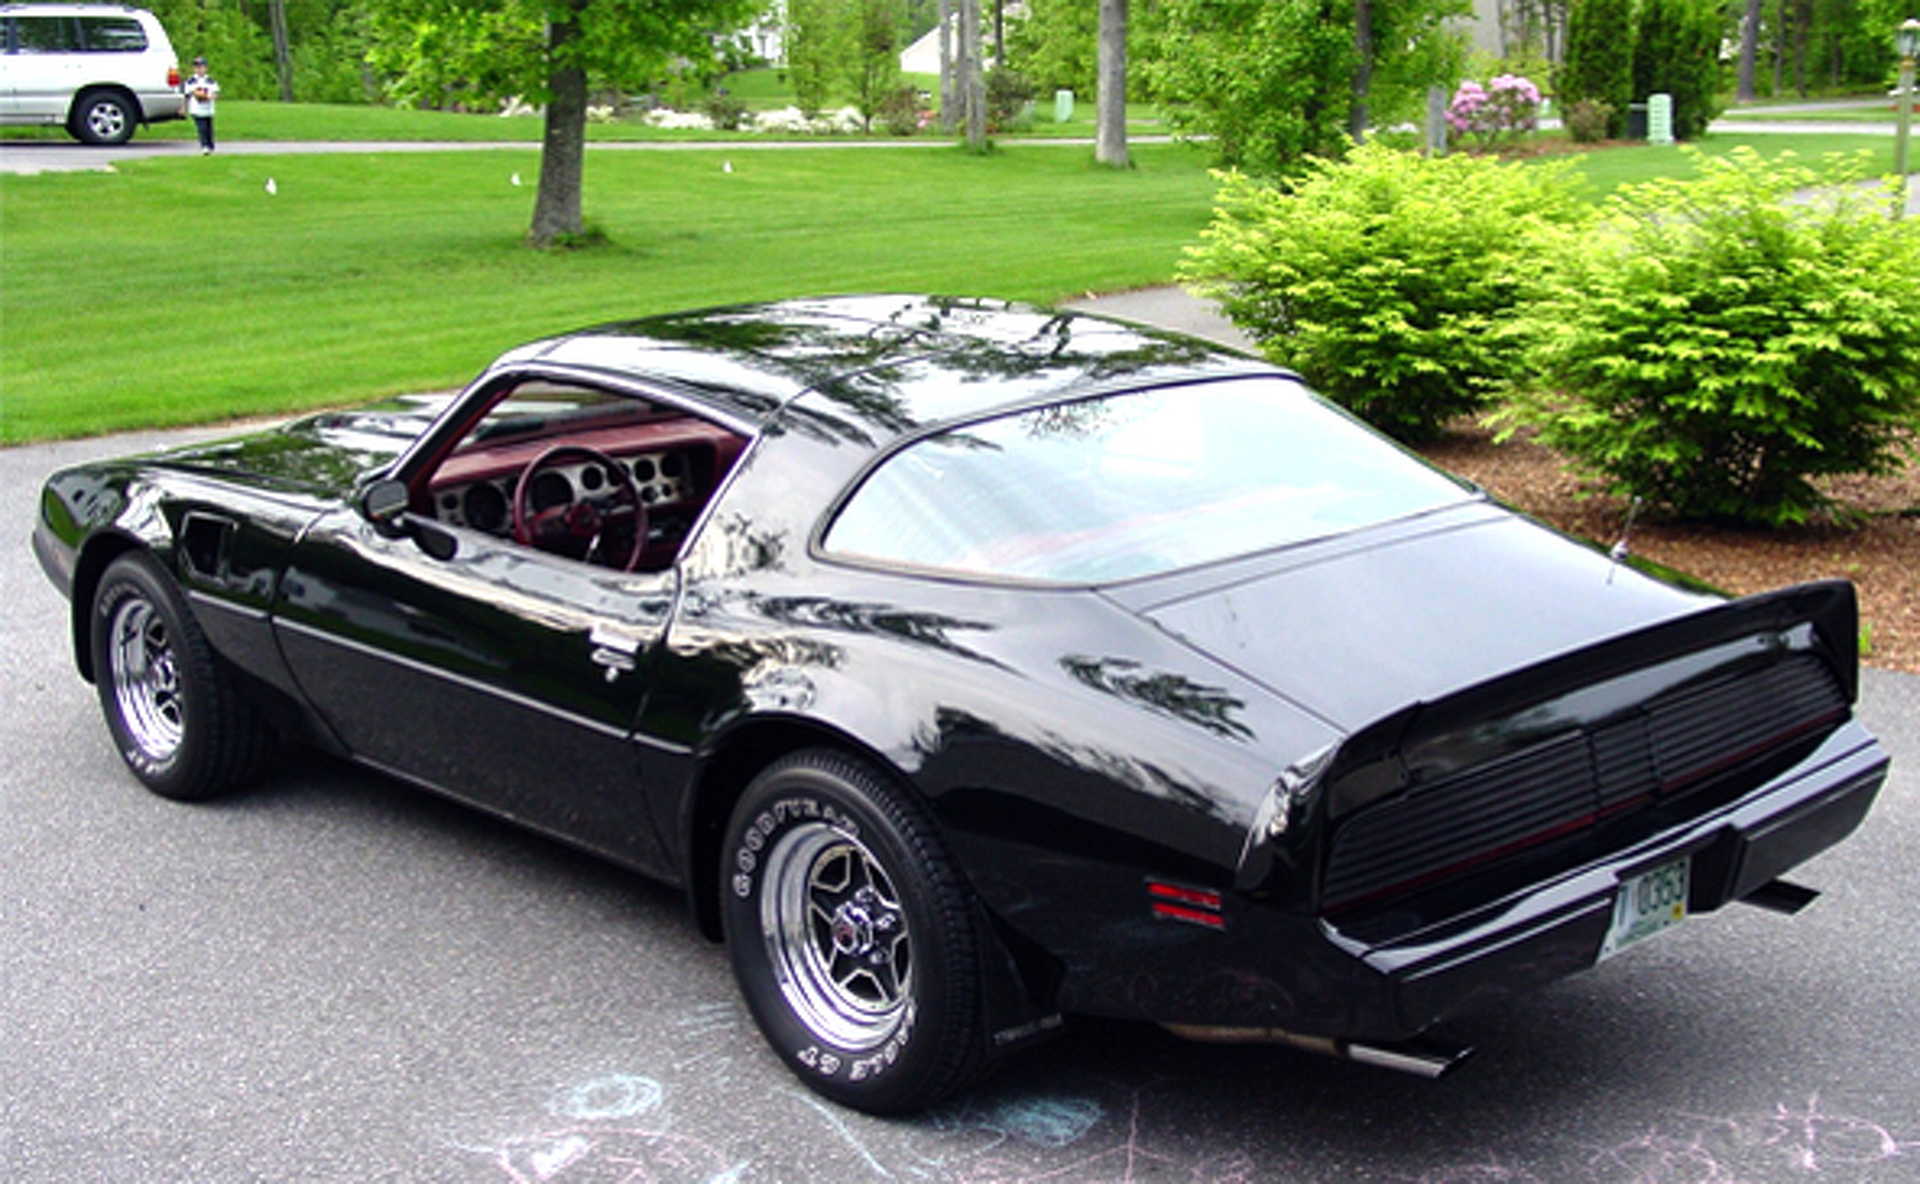 Your Ride: 1979 Pontiac Firebird Trans Am